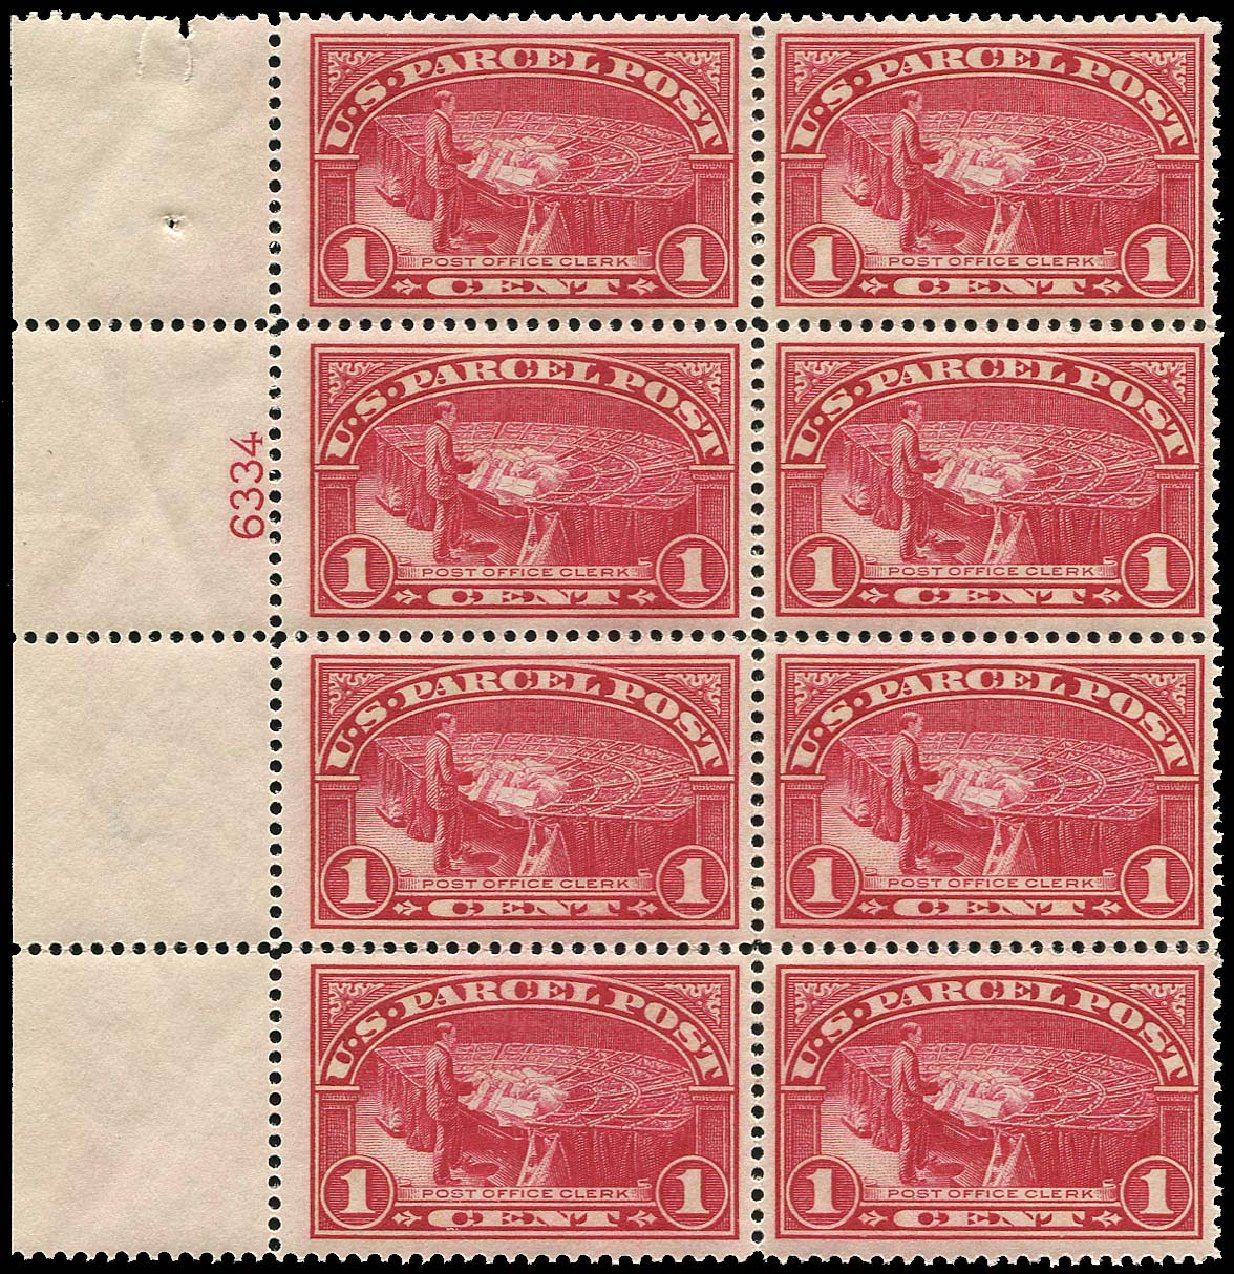 US Stamp Prices Scott Catalogue # Q1 - 1913 1c Parcel Post. Regency-Superior, Nov 2014, Sale 108, Lot 1449